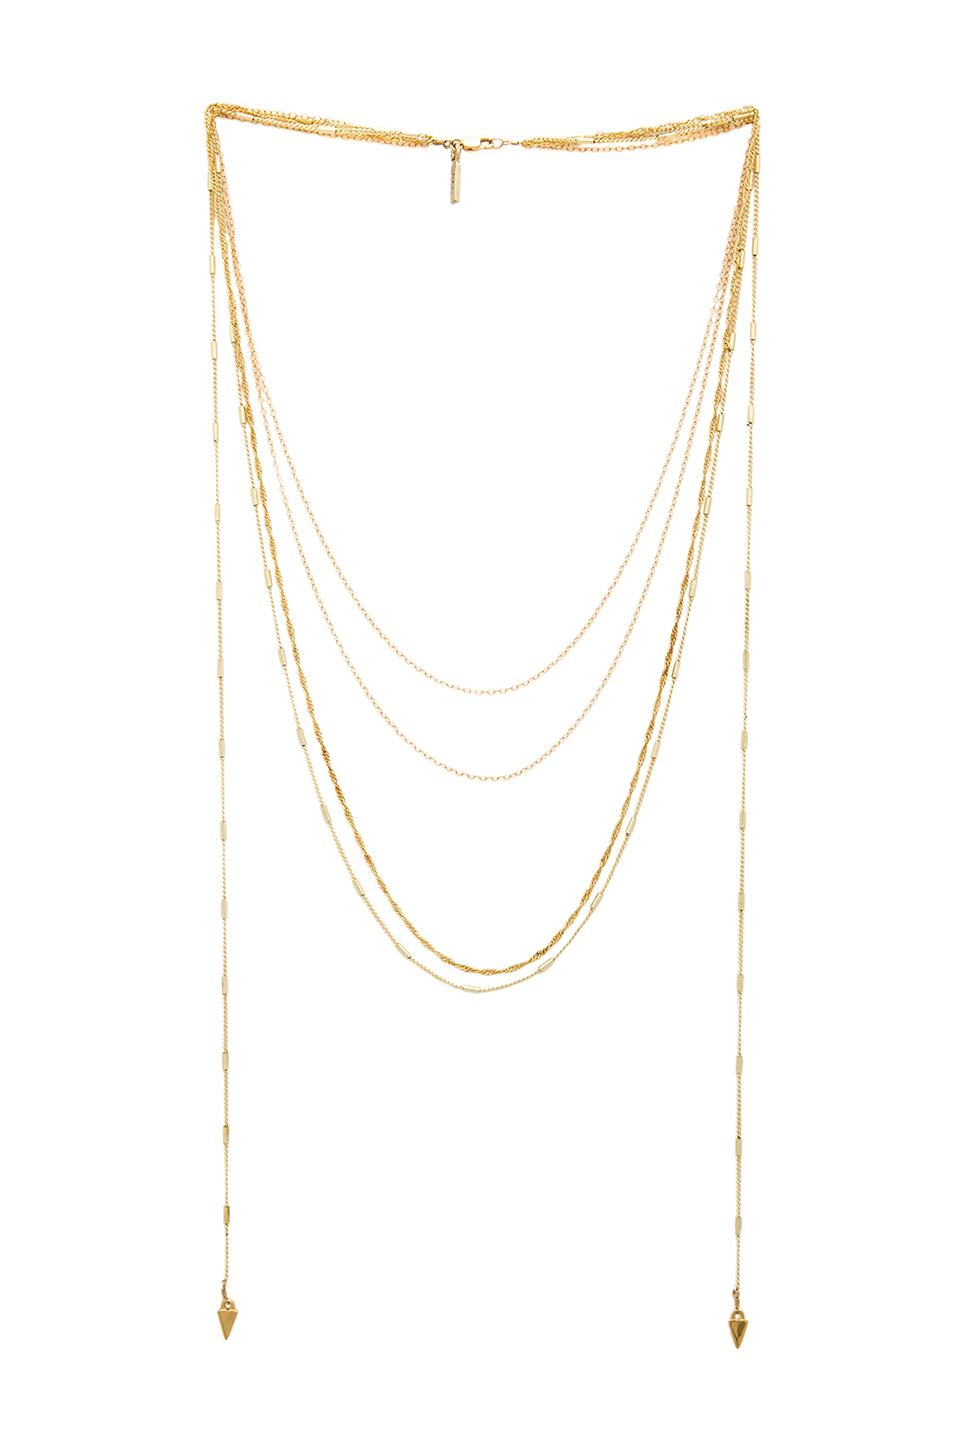 Vanessa Mooney The Love Letter Necklace in Gold